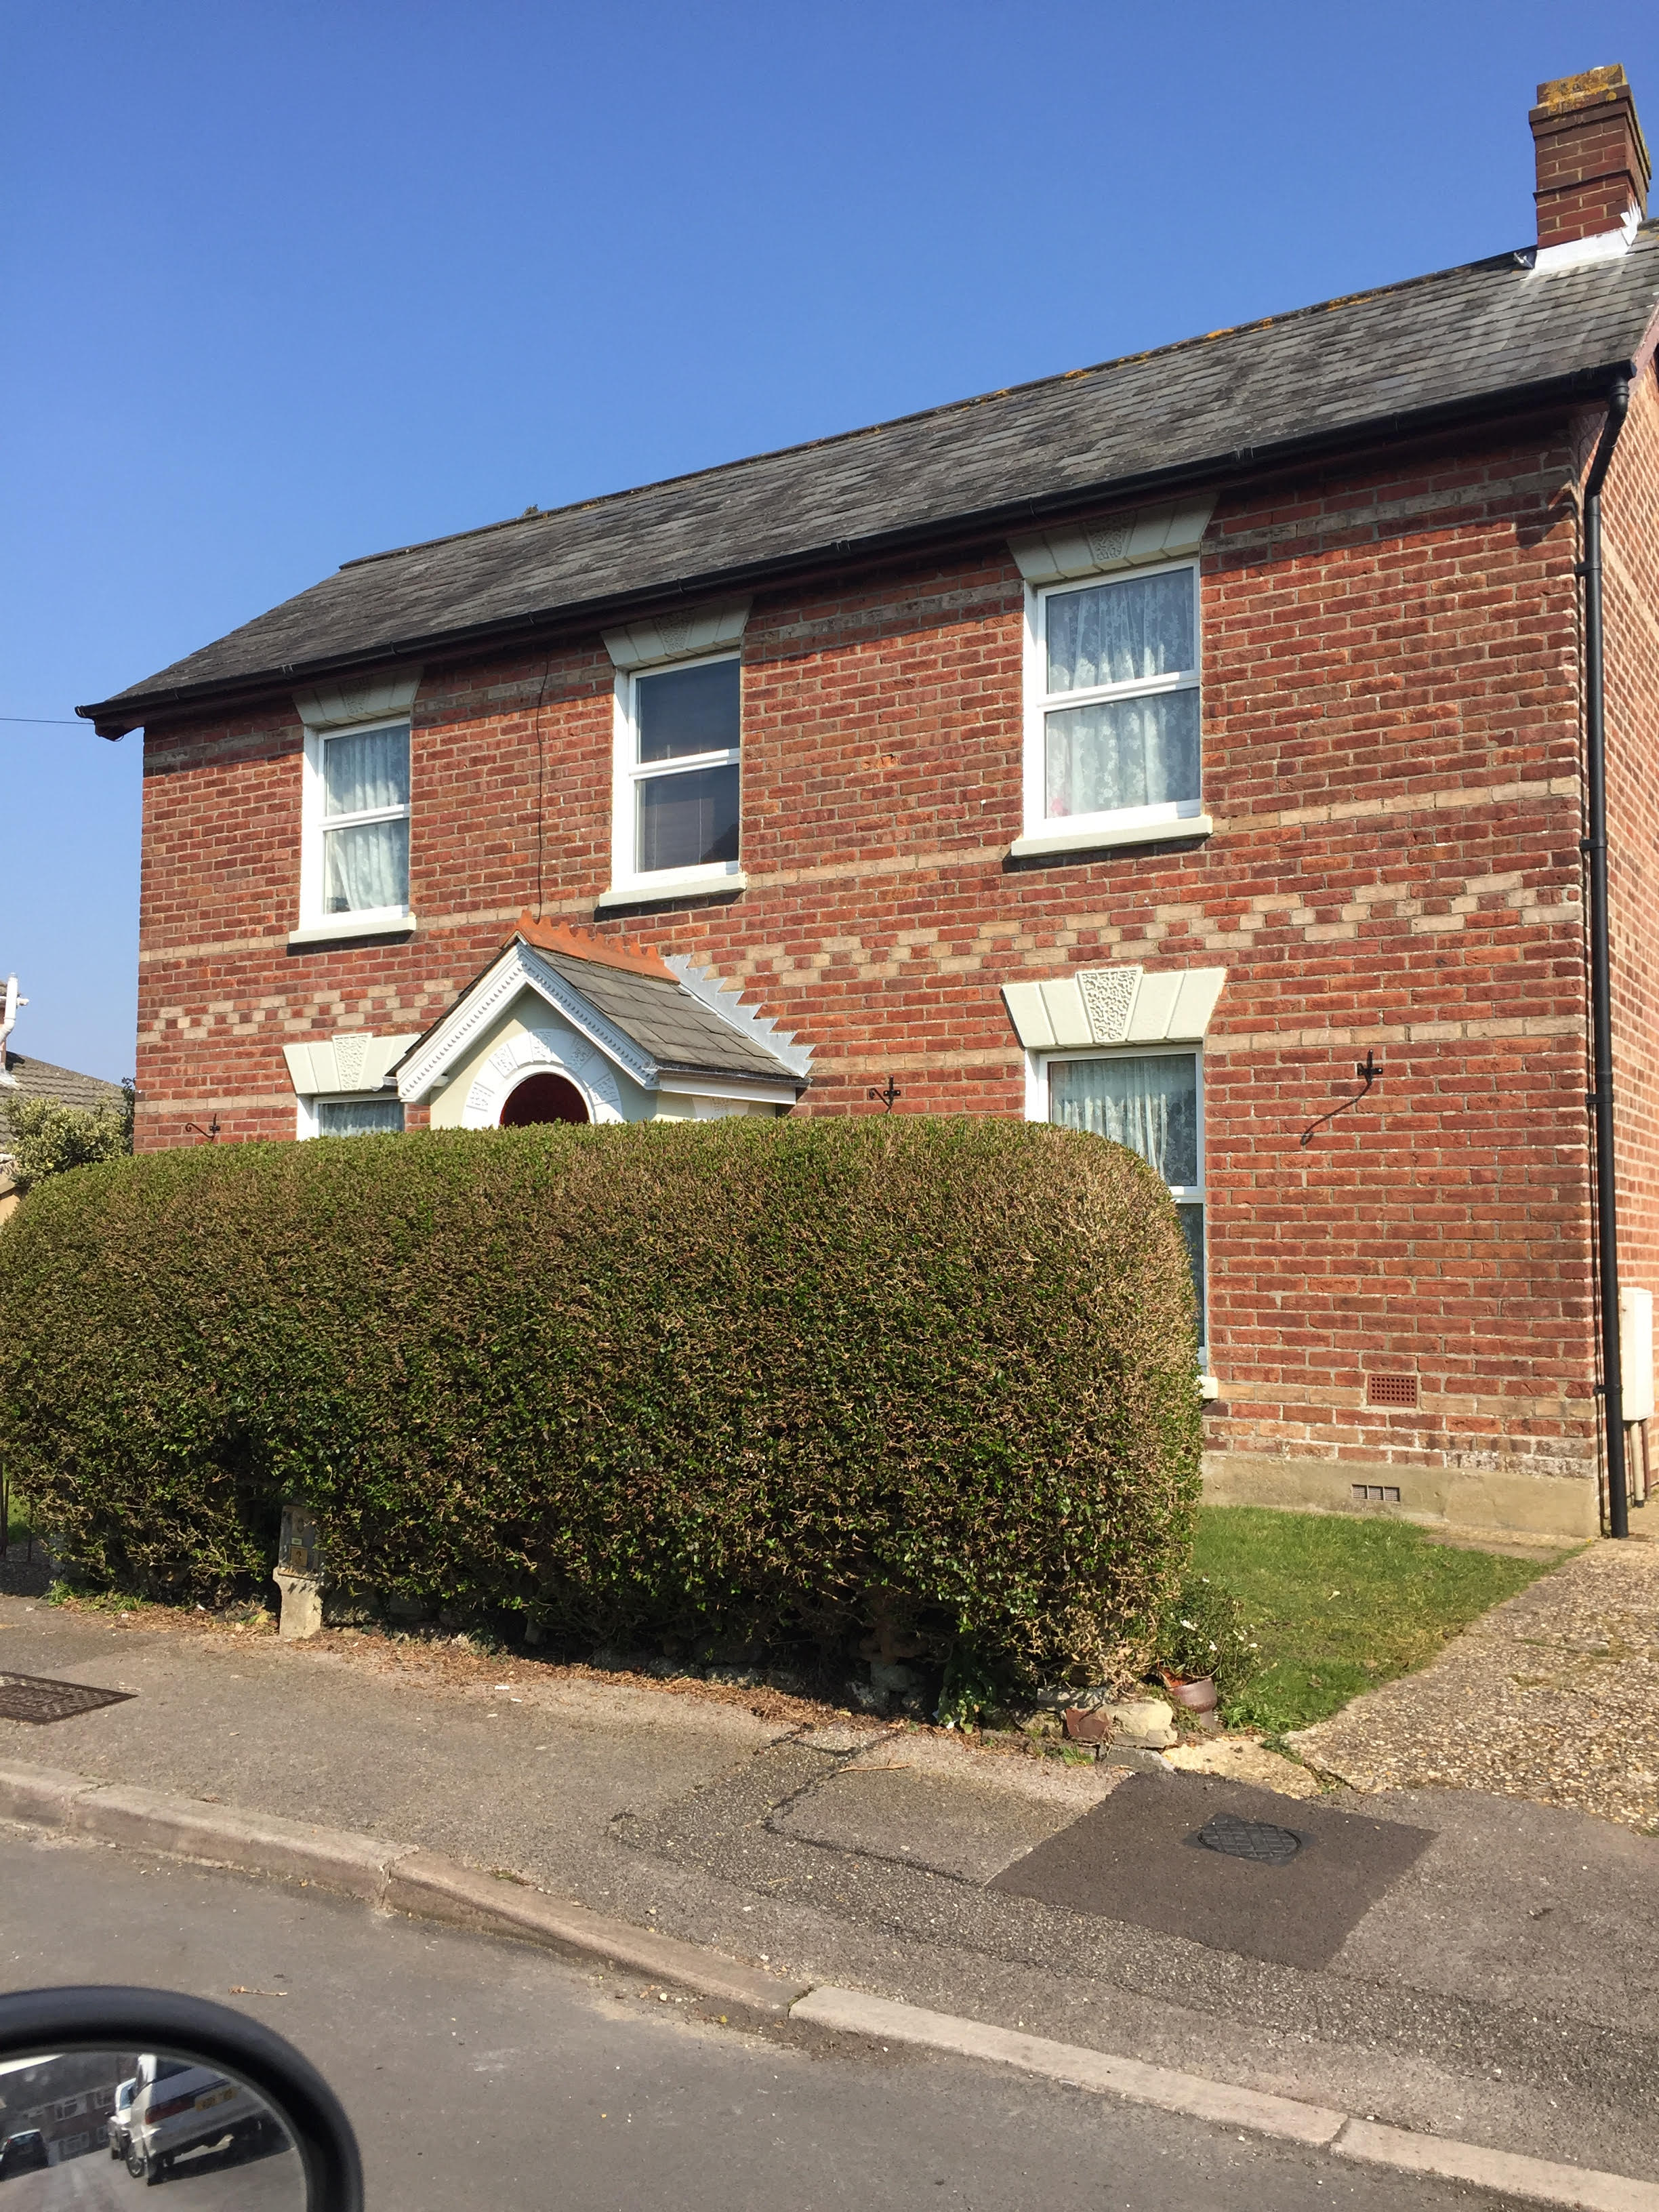 House extension approved in bournemouth architectural - Architects poole dorset ...